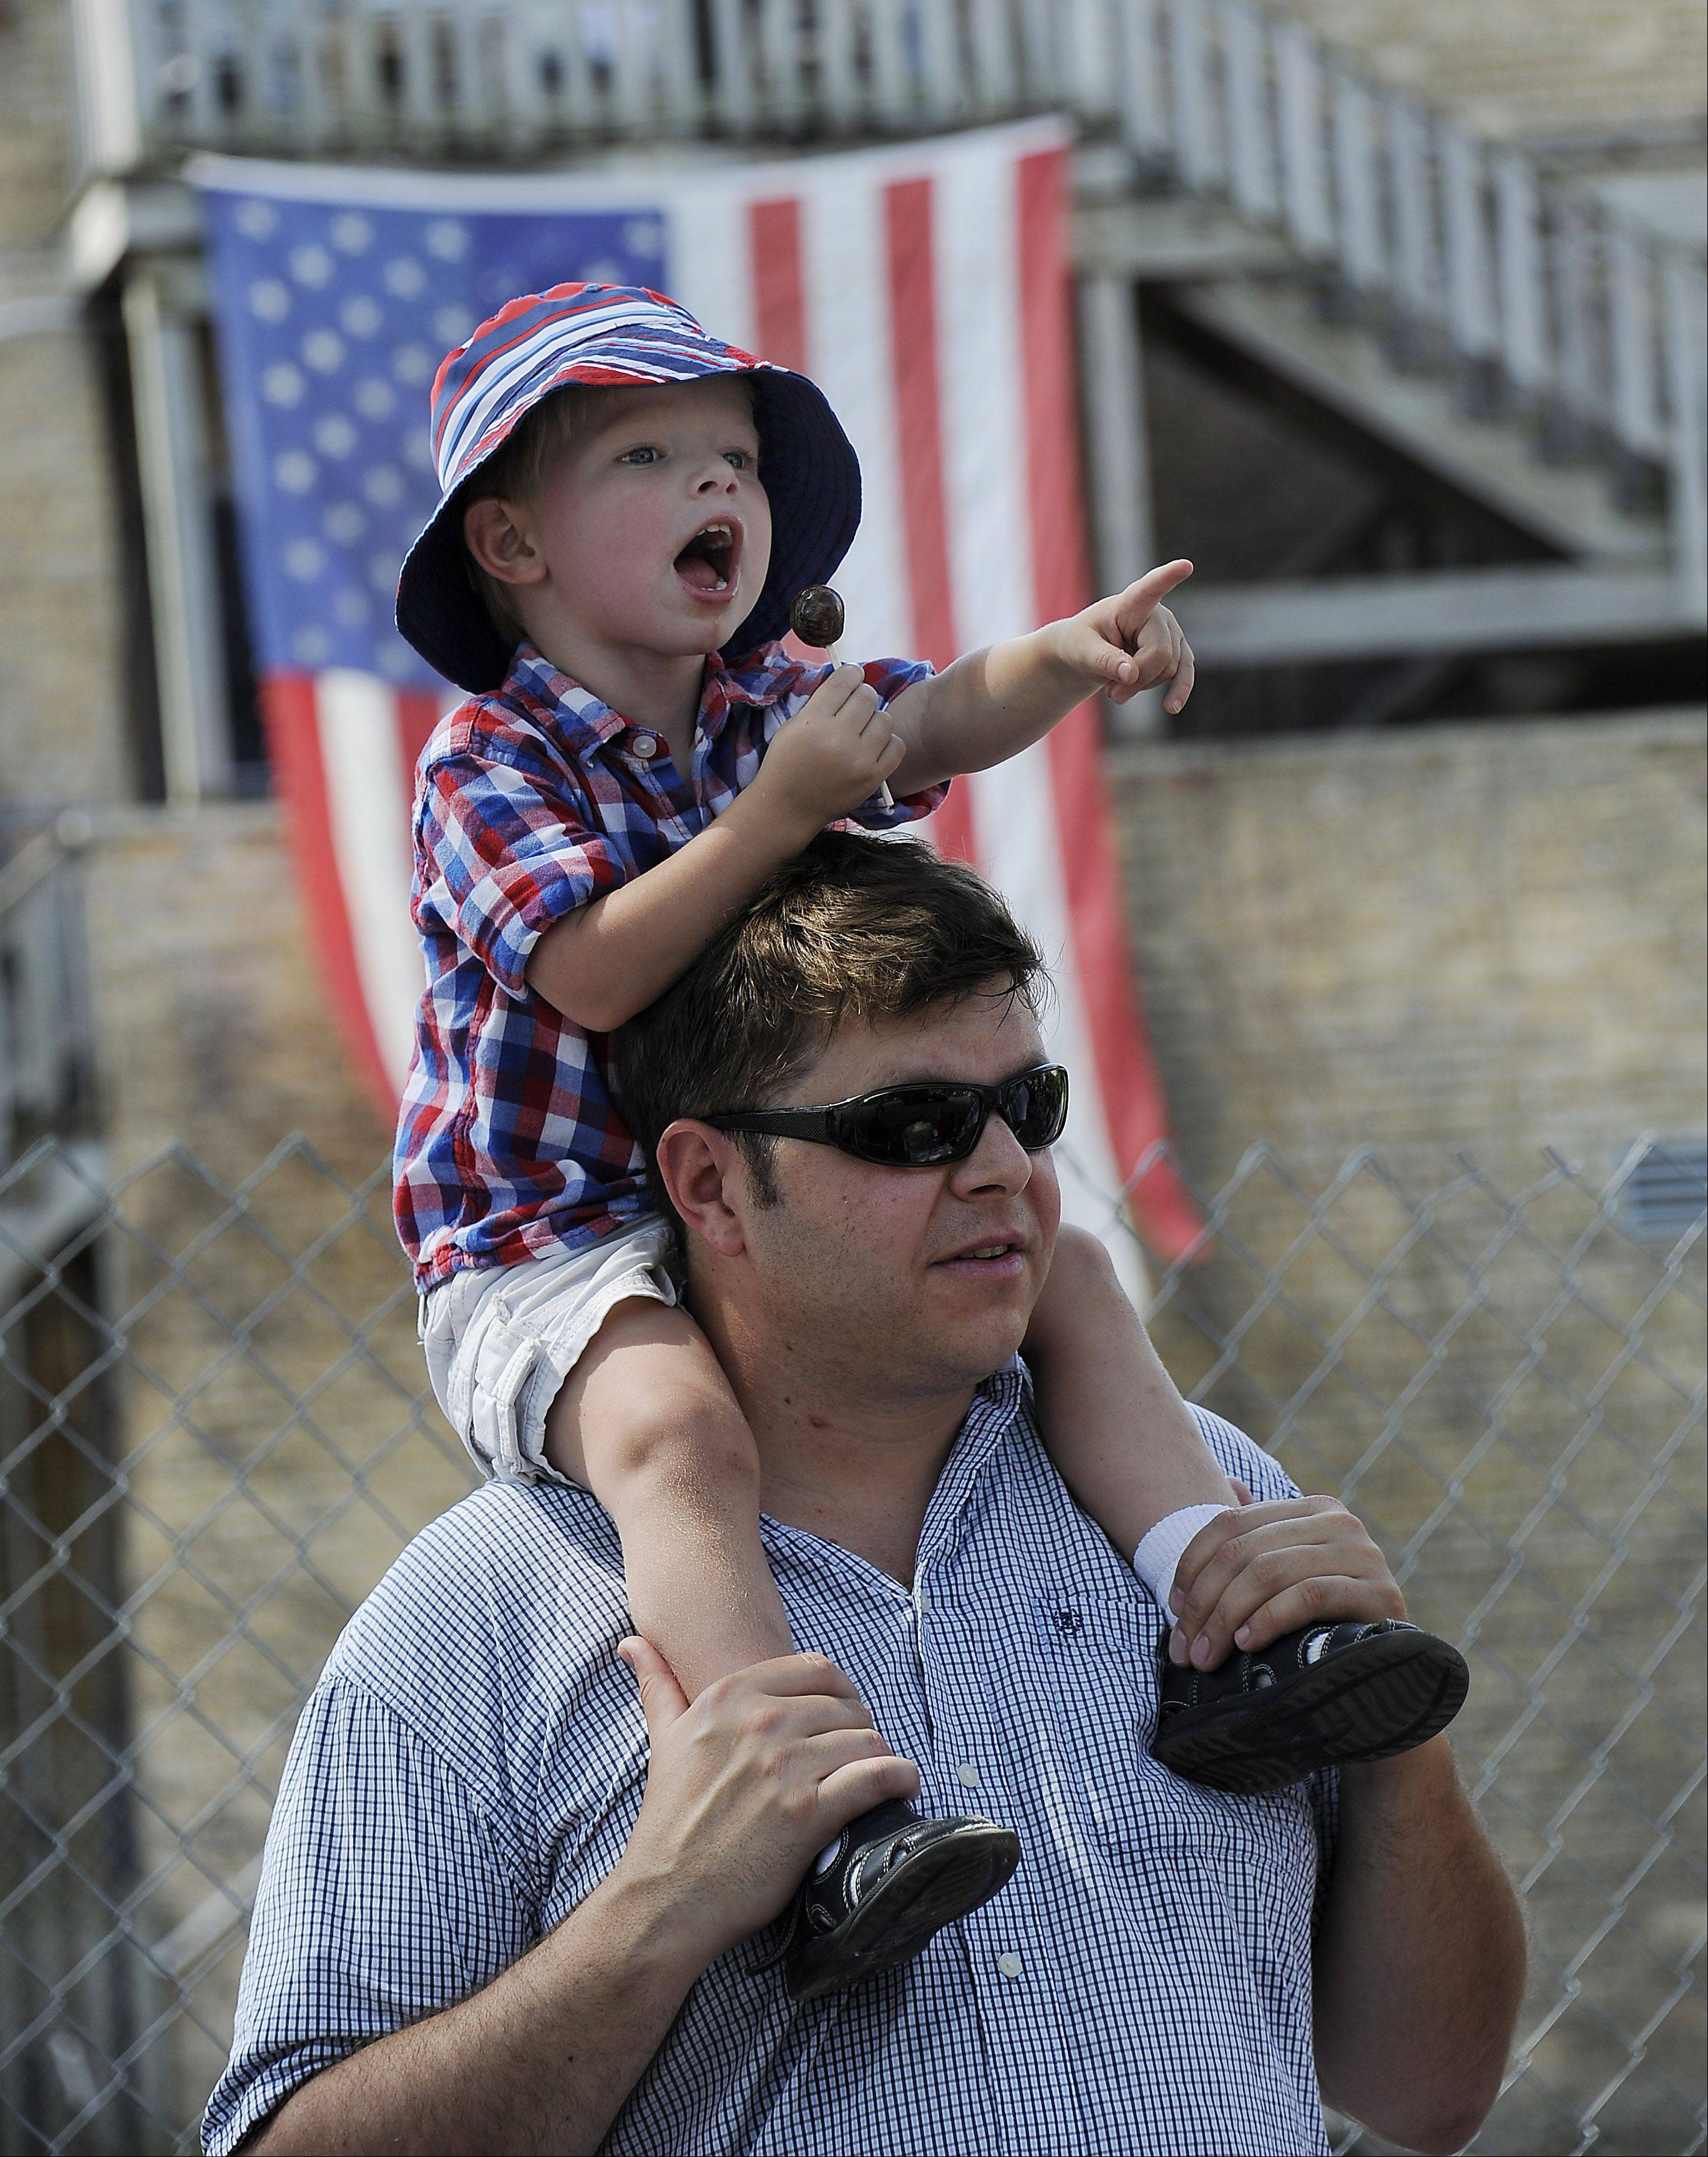 Aidan Nagy, 2, of Arlington Heights points out what he likes in the Fourth of July parade while dad, Steve provides a higher vantage point during the parade on Wednesday in Arlington Heights.